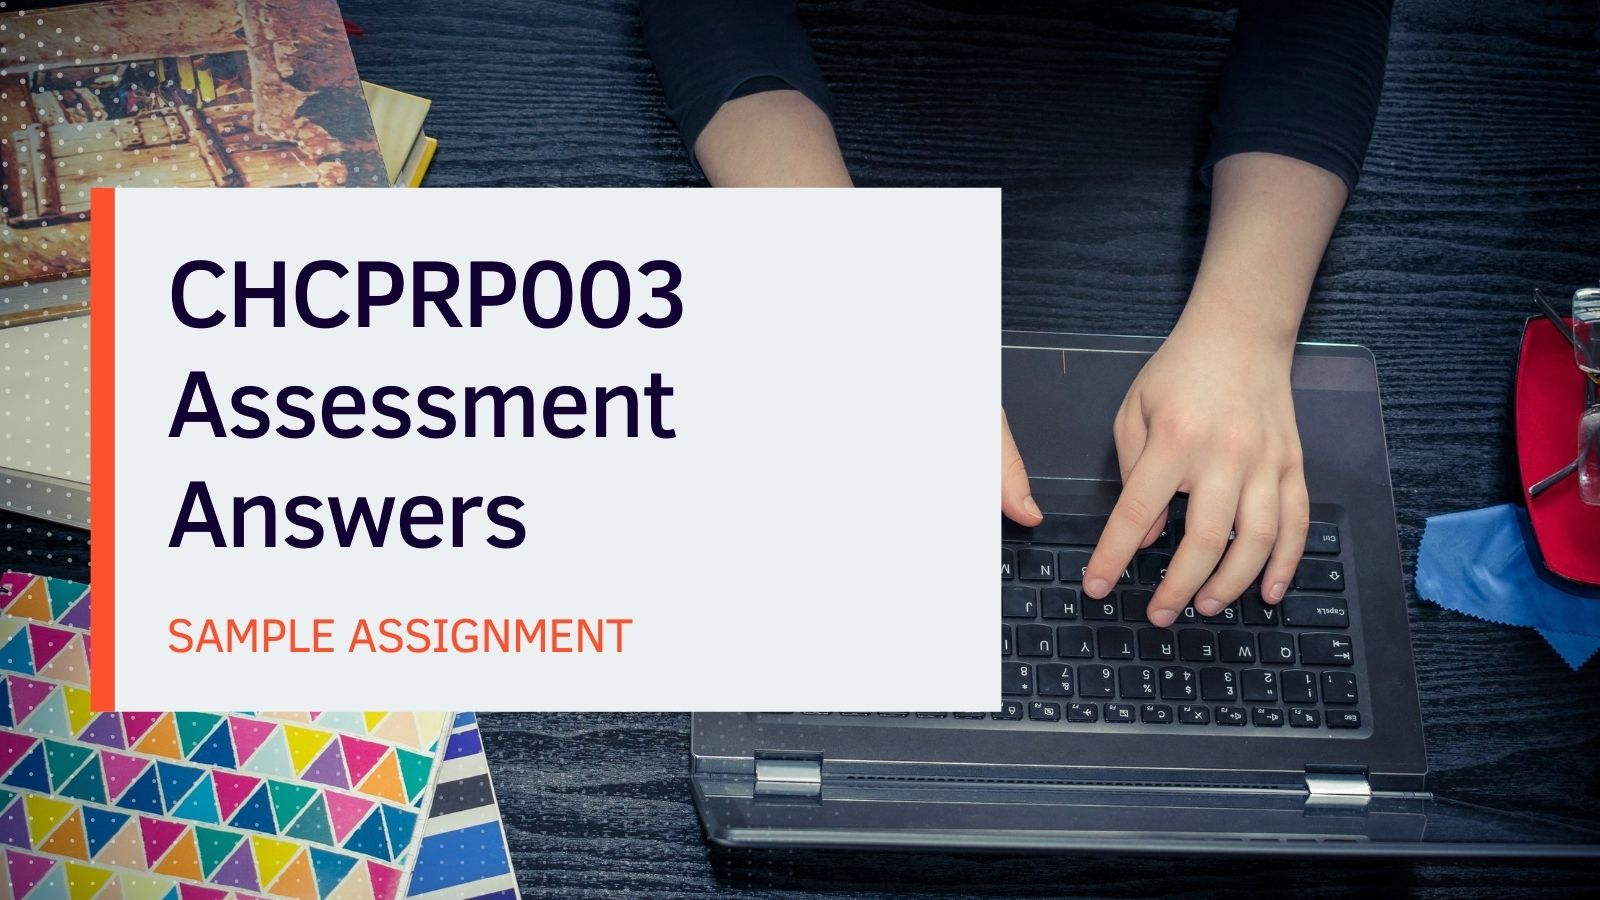 CHCPRP003 Assessment Answers